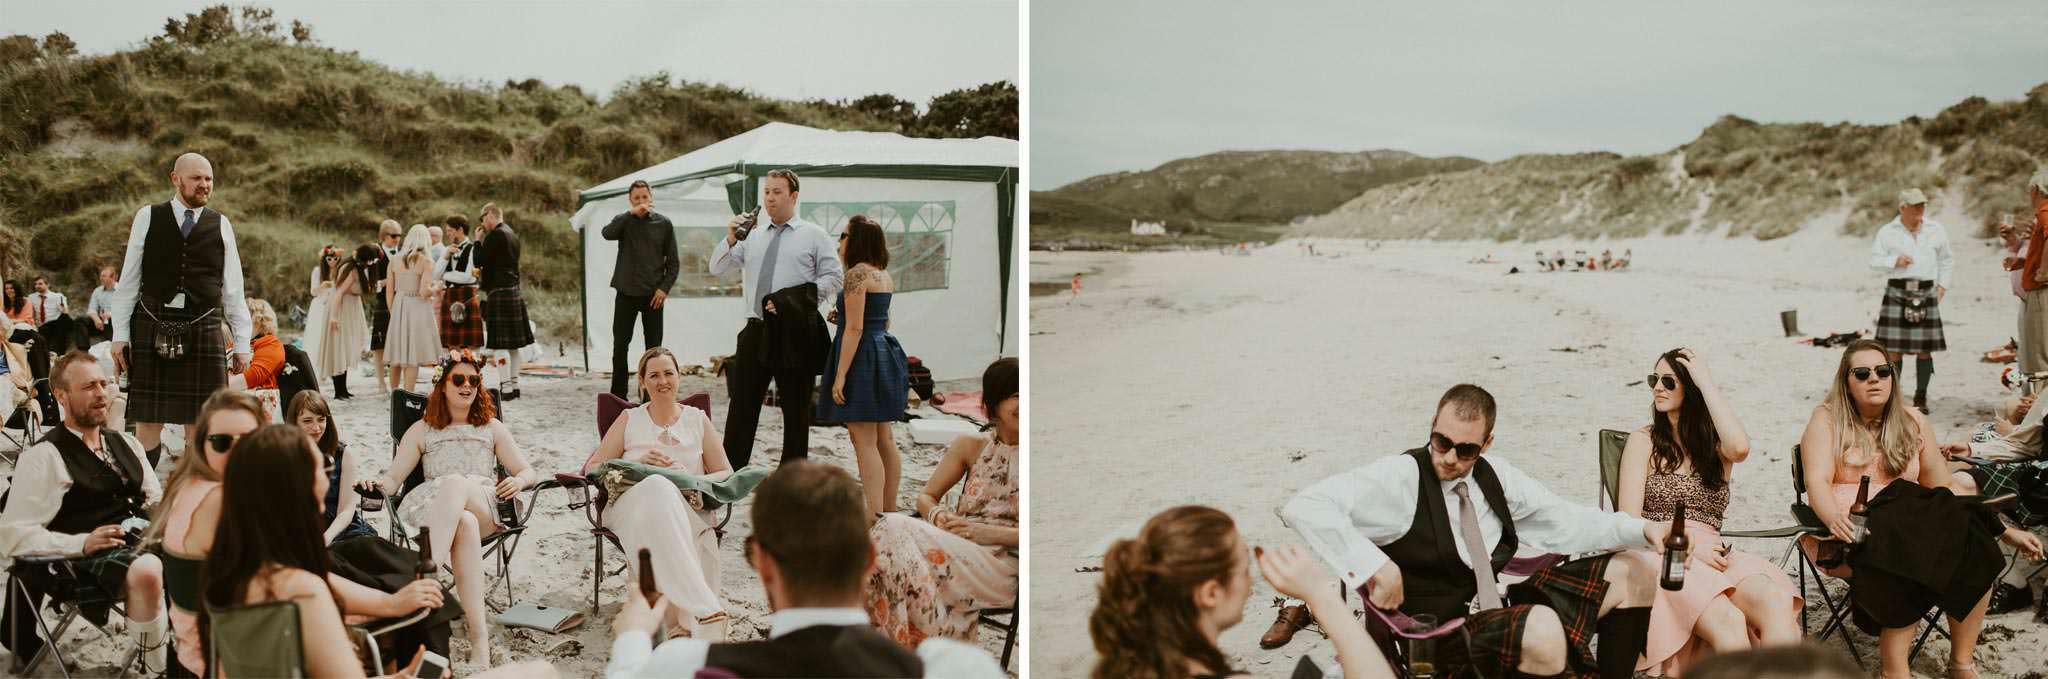 wedding-photographer-arisaig-127